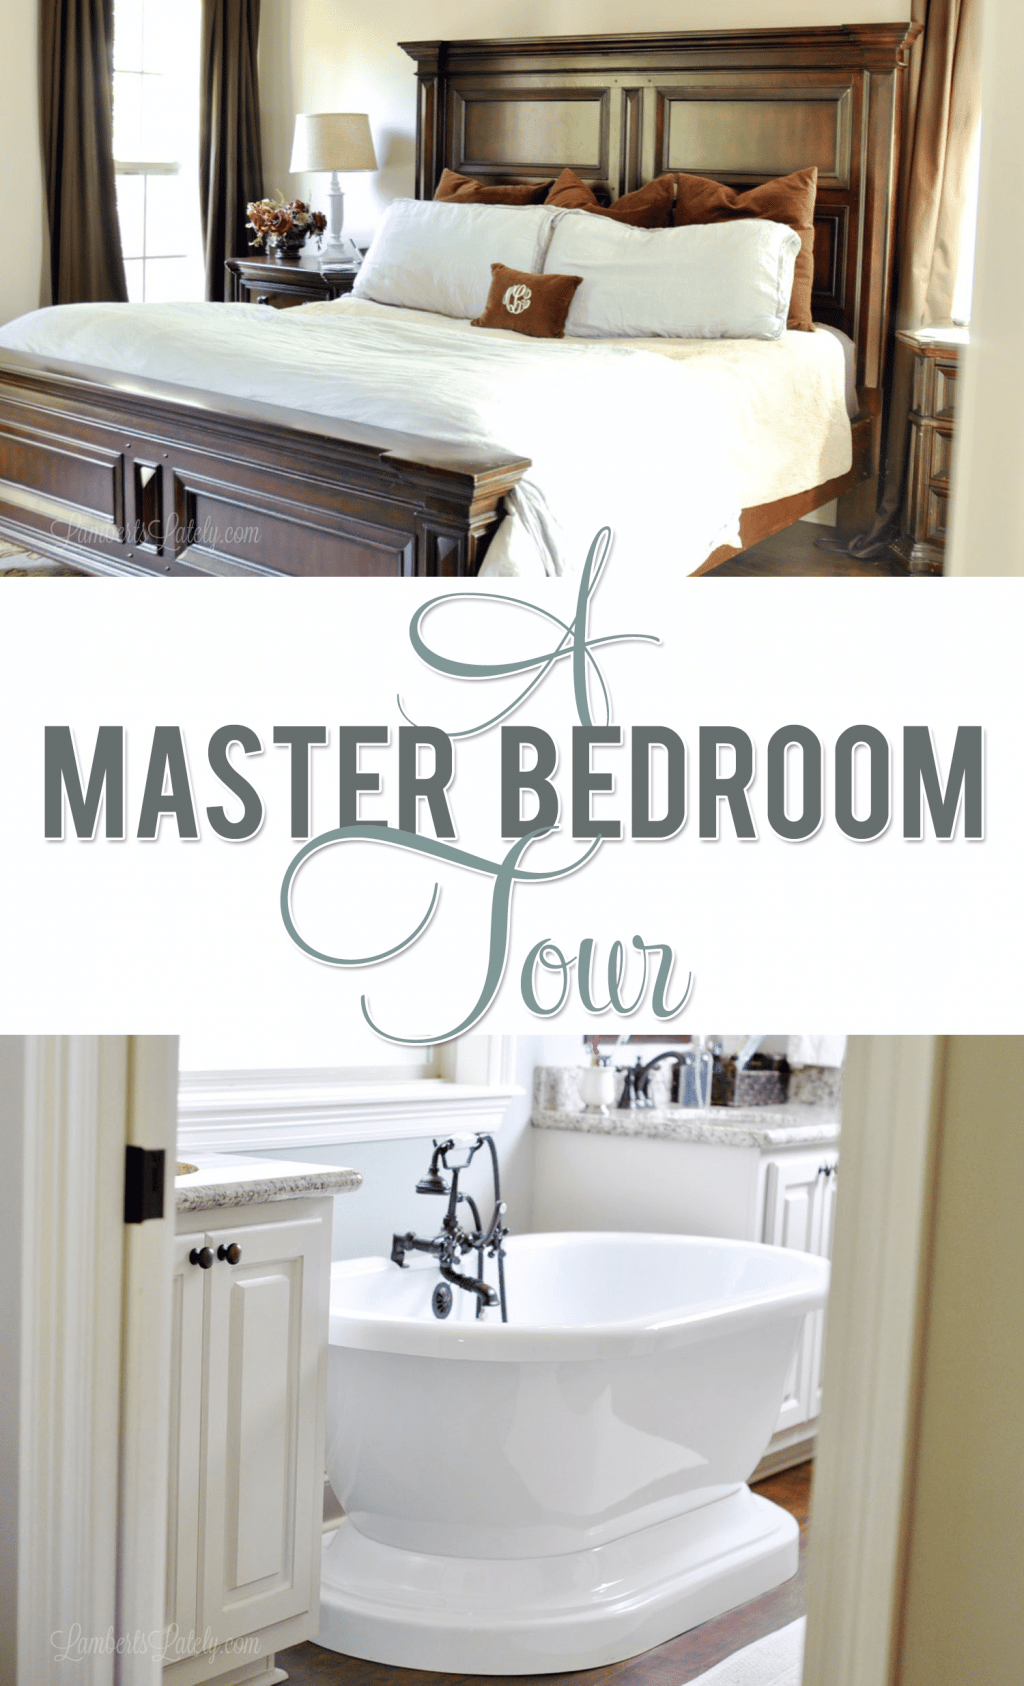 This post has tons of ideas for a master bedroom & bathroom, including organization techniques, paint colors, and decor/design ideas for furniture and bedding.